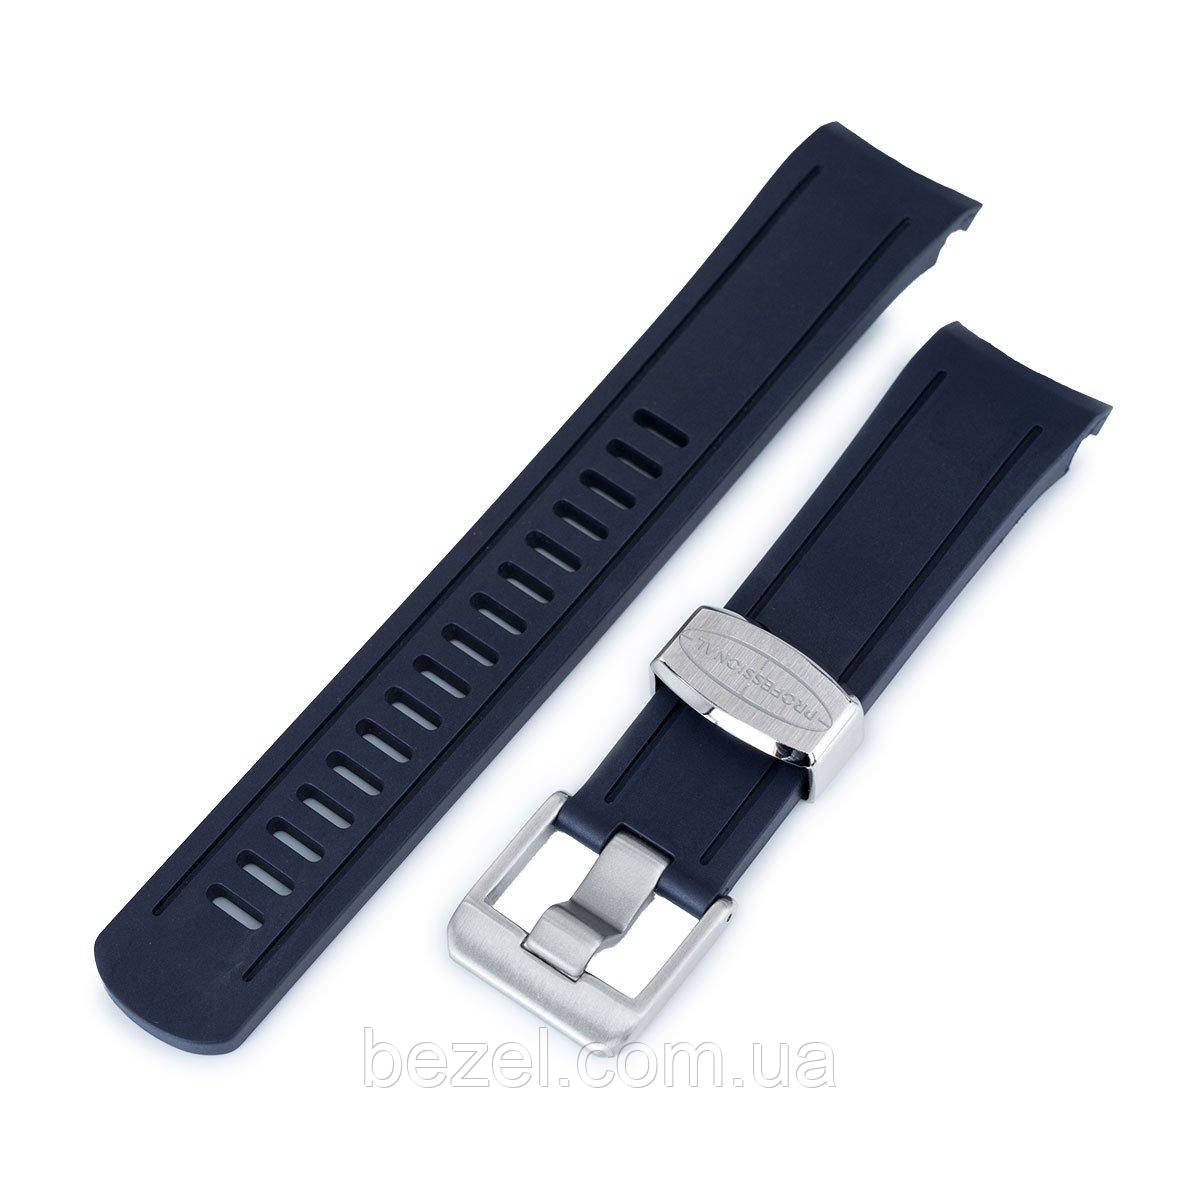 22mm Crafter Blue - Navy Blue Rubber Curved Lug Watch Band for Seiko SKX007